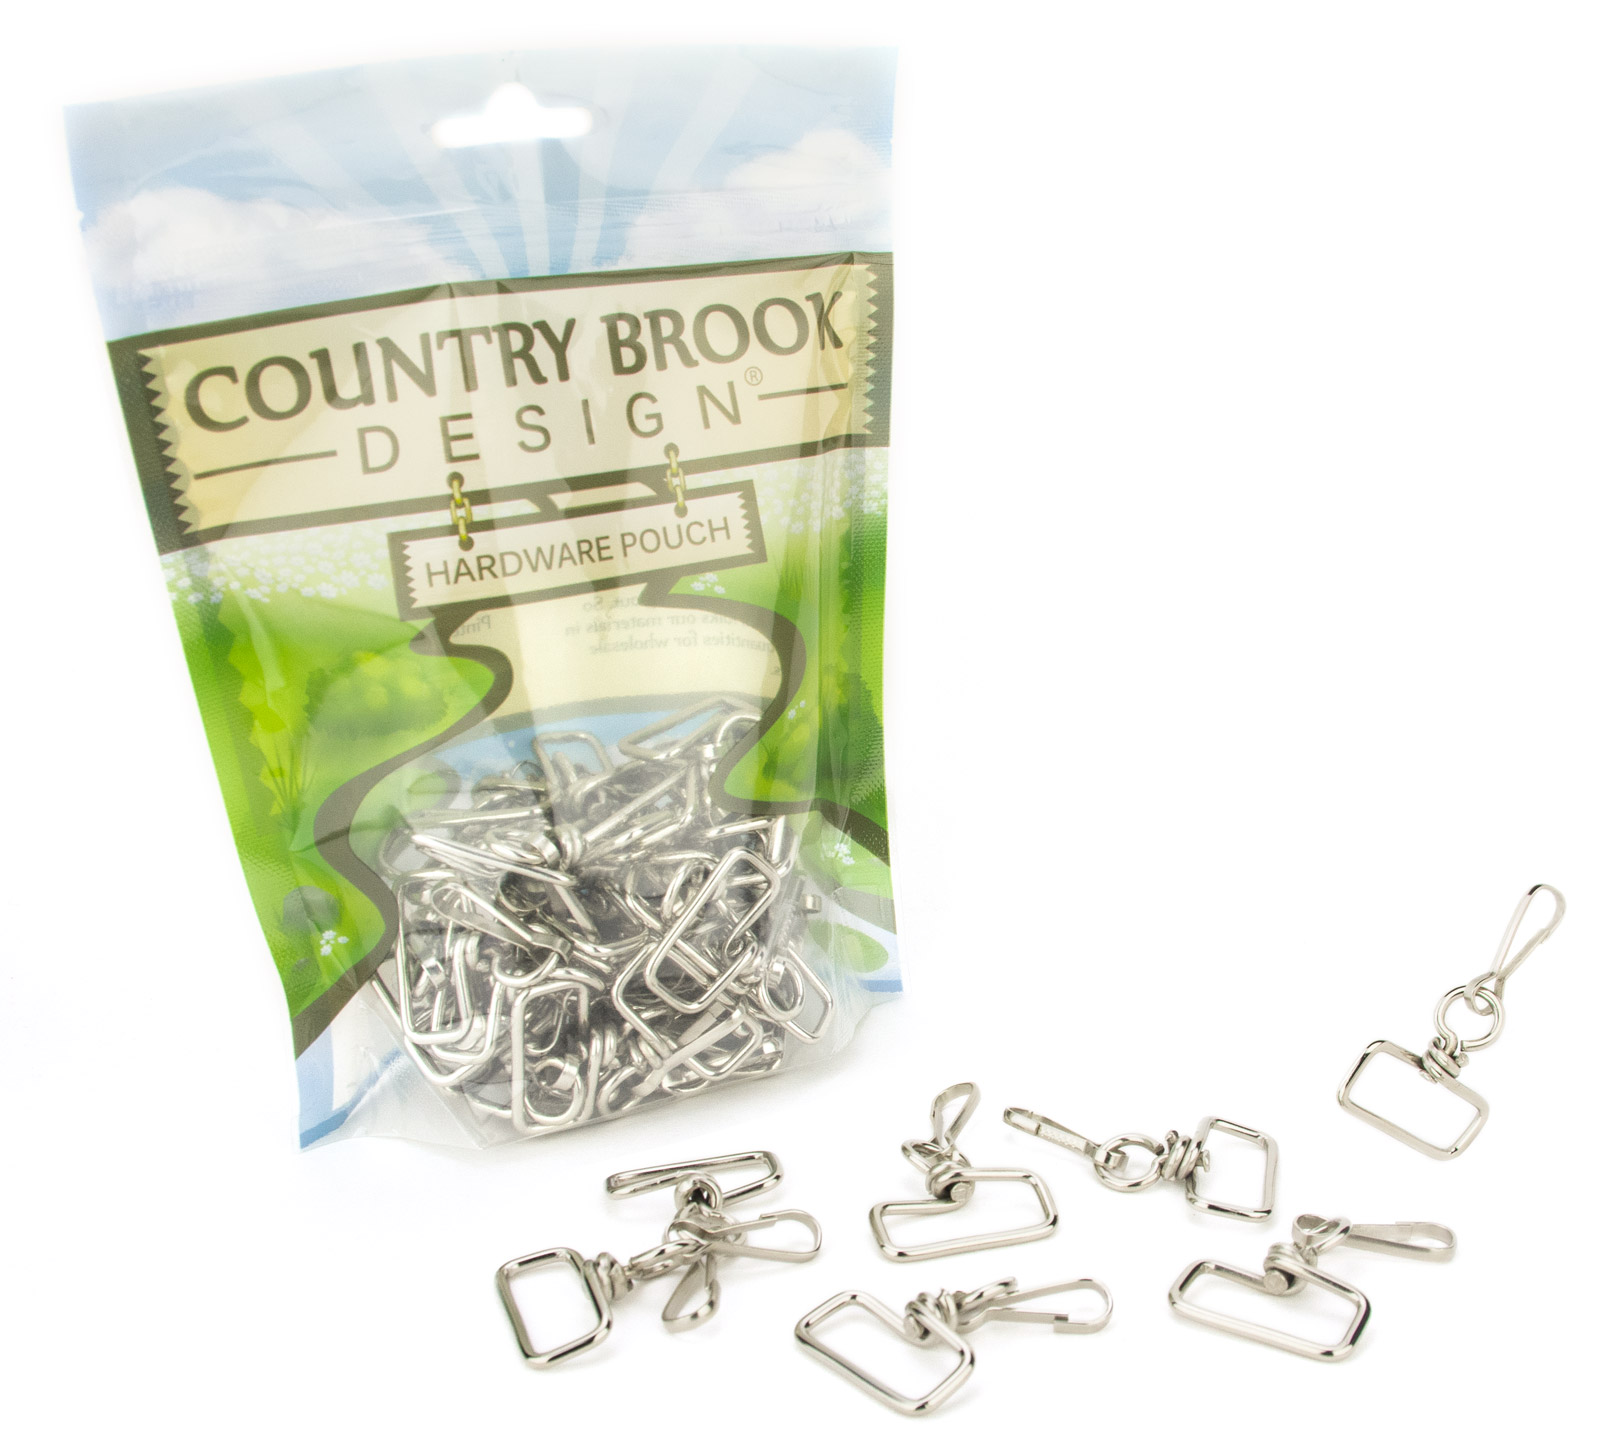 Country Brook Design 1 Inch Swivel Square Top Lanyard Hooks